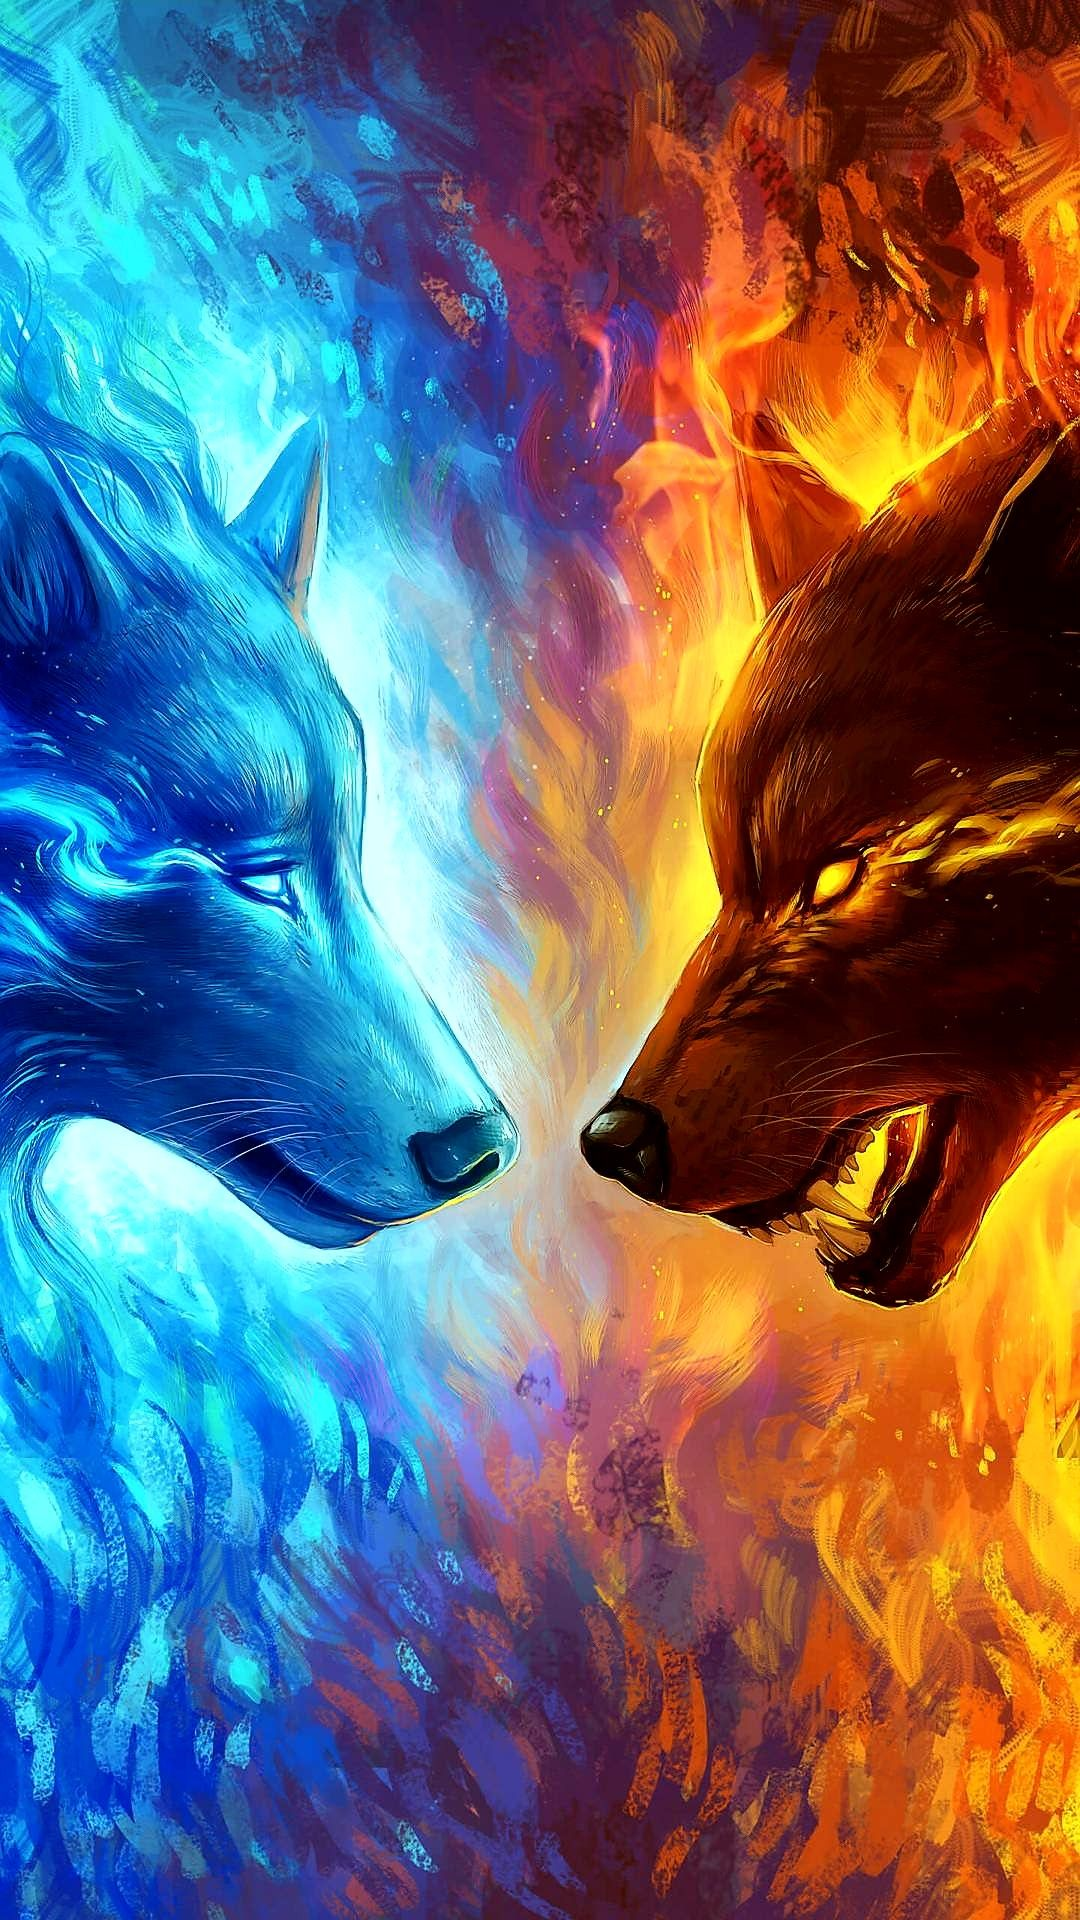 Pin by River on wolfs | Wolf, Anime wolf, Art